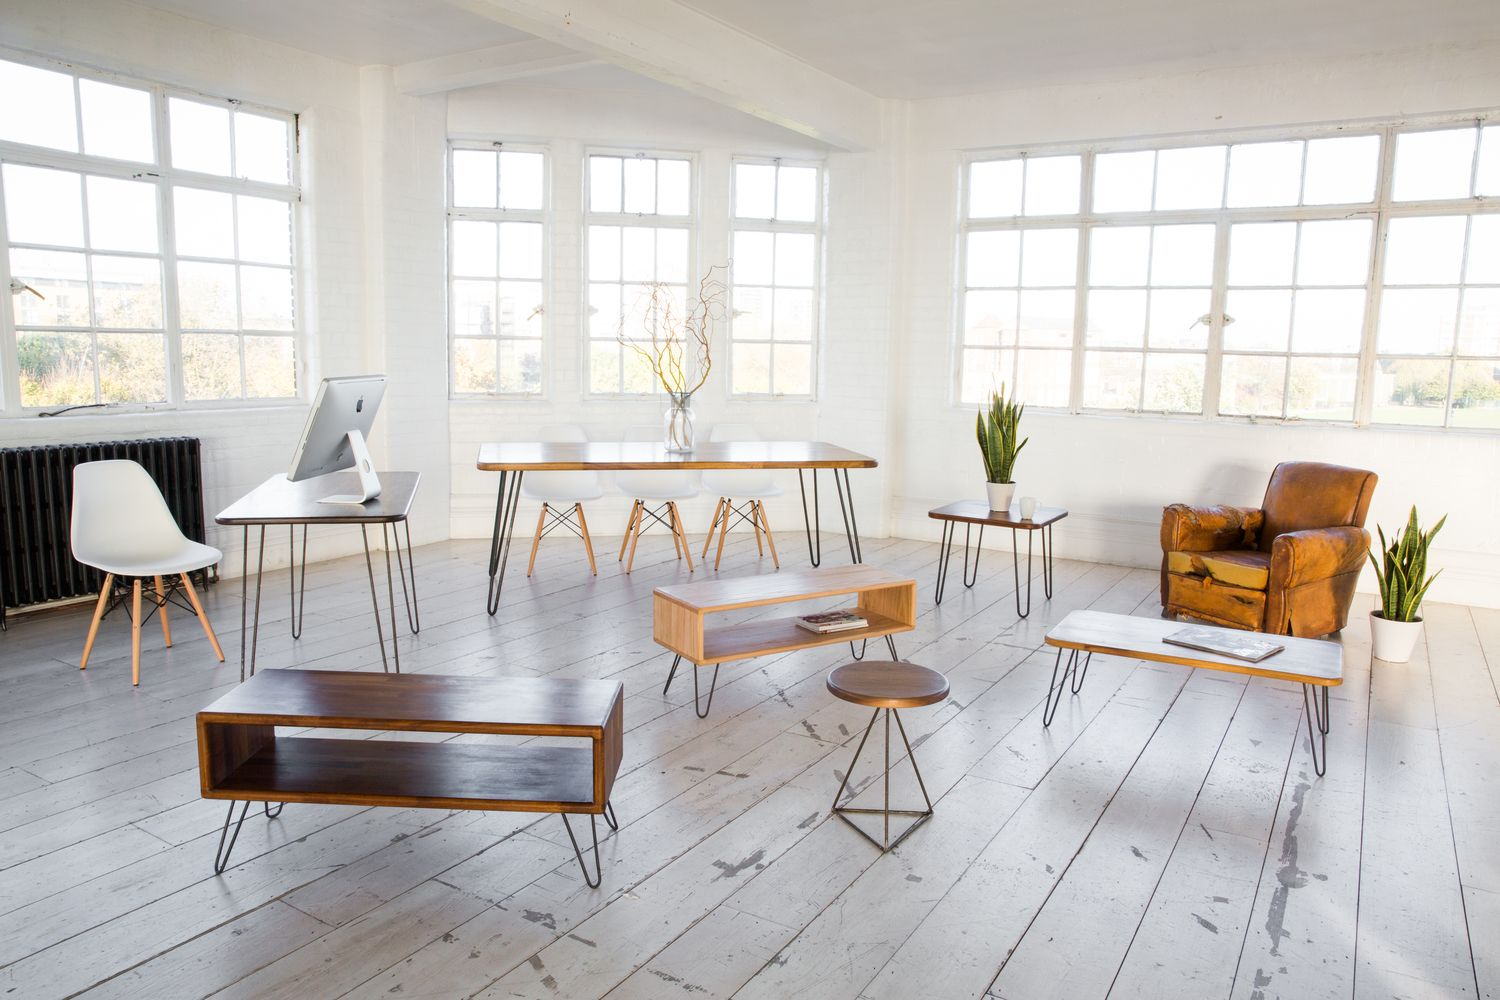 flat pack furniture company. Upstart Furniture Companies By Julie Carlson A New Wave Of Entrepreneurs Is Taking On Ikea, Cutting Out The Middlemen And Offering Flat -pack Pack Company